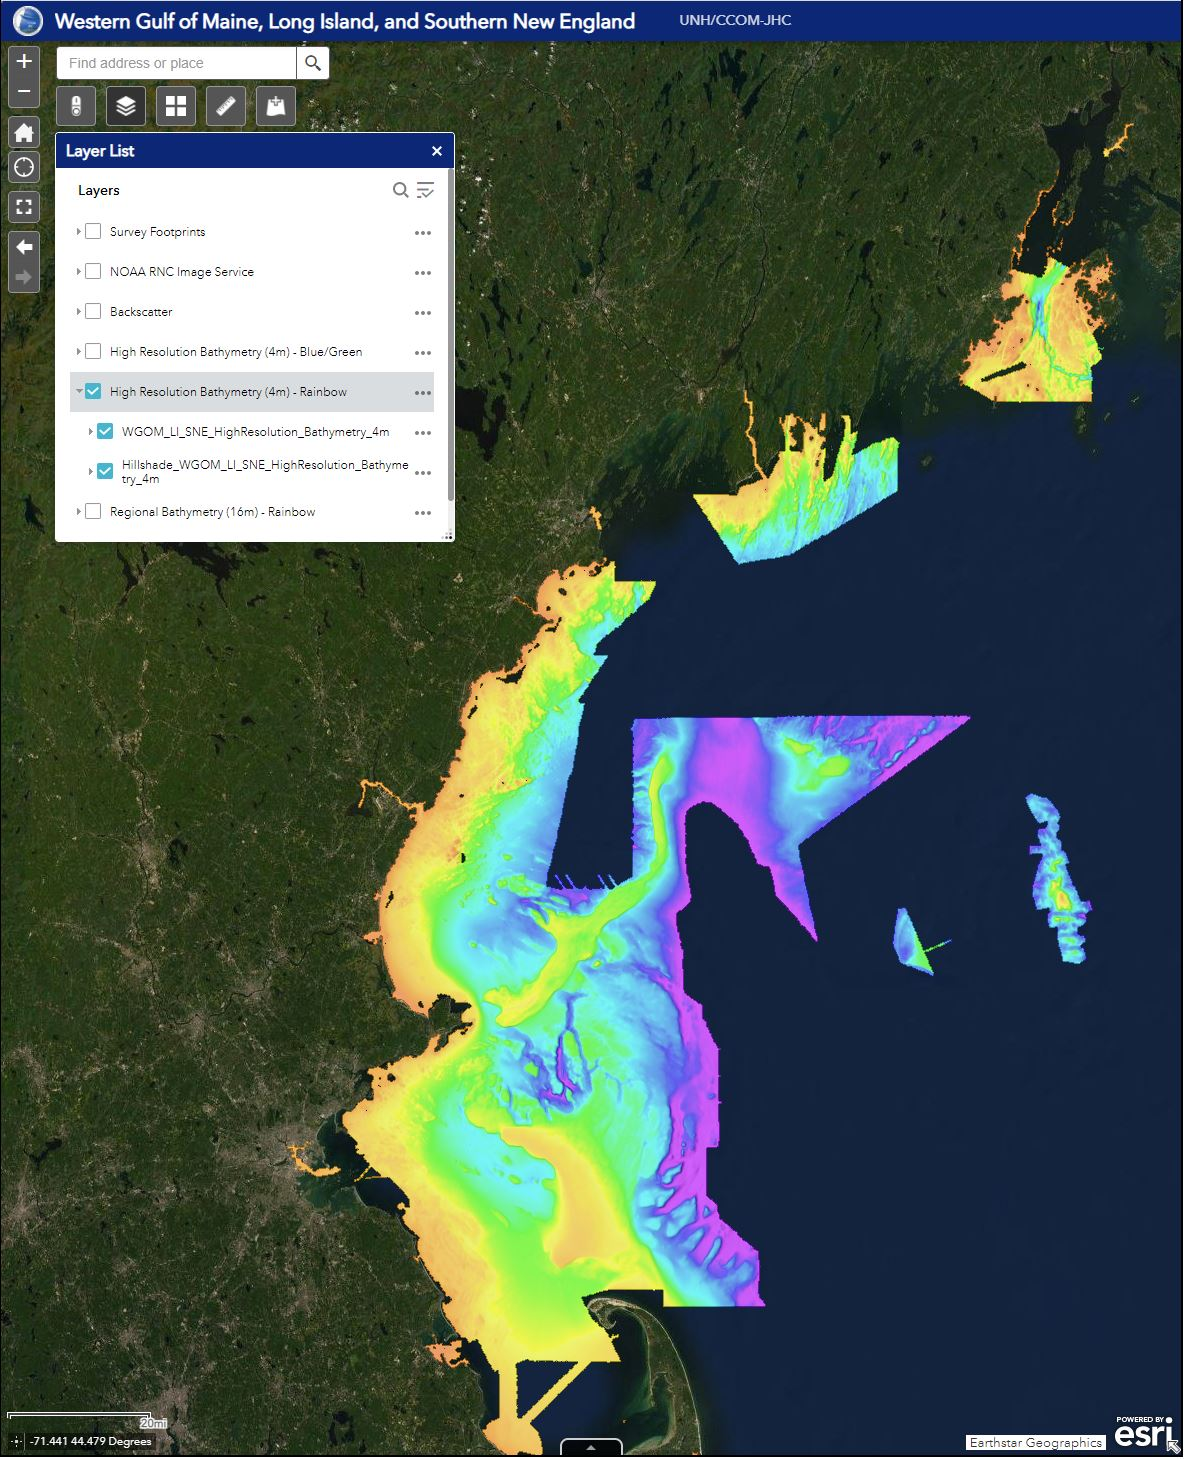 Satellite image of New England coast with blocks of color gradients showing ocean depth.